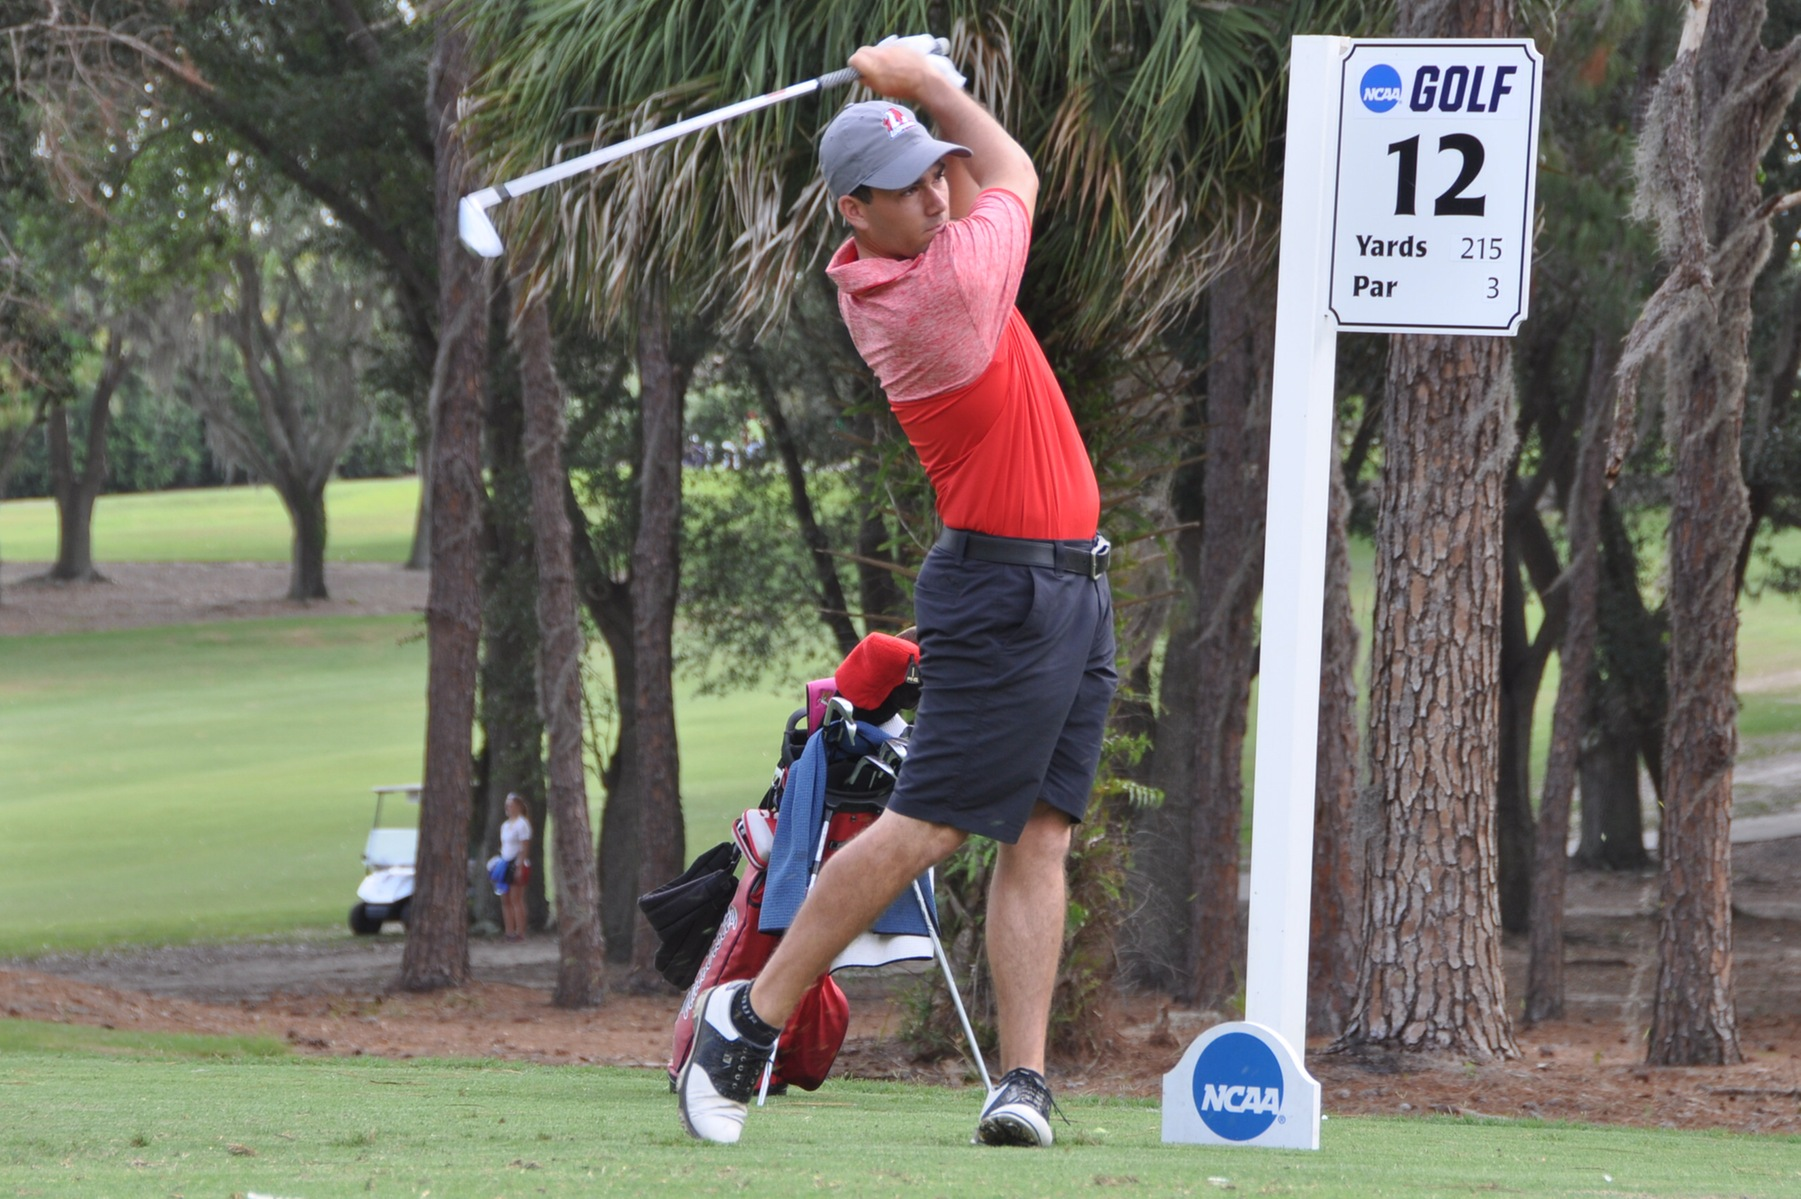 Senior Logan Lanier finished fourth at the NCAA Division III Championship to earn first team All-American honors.